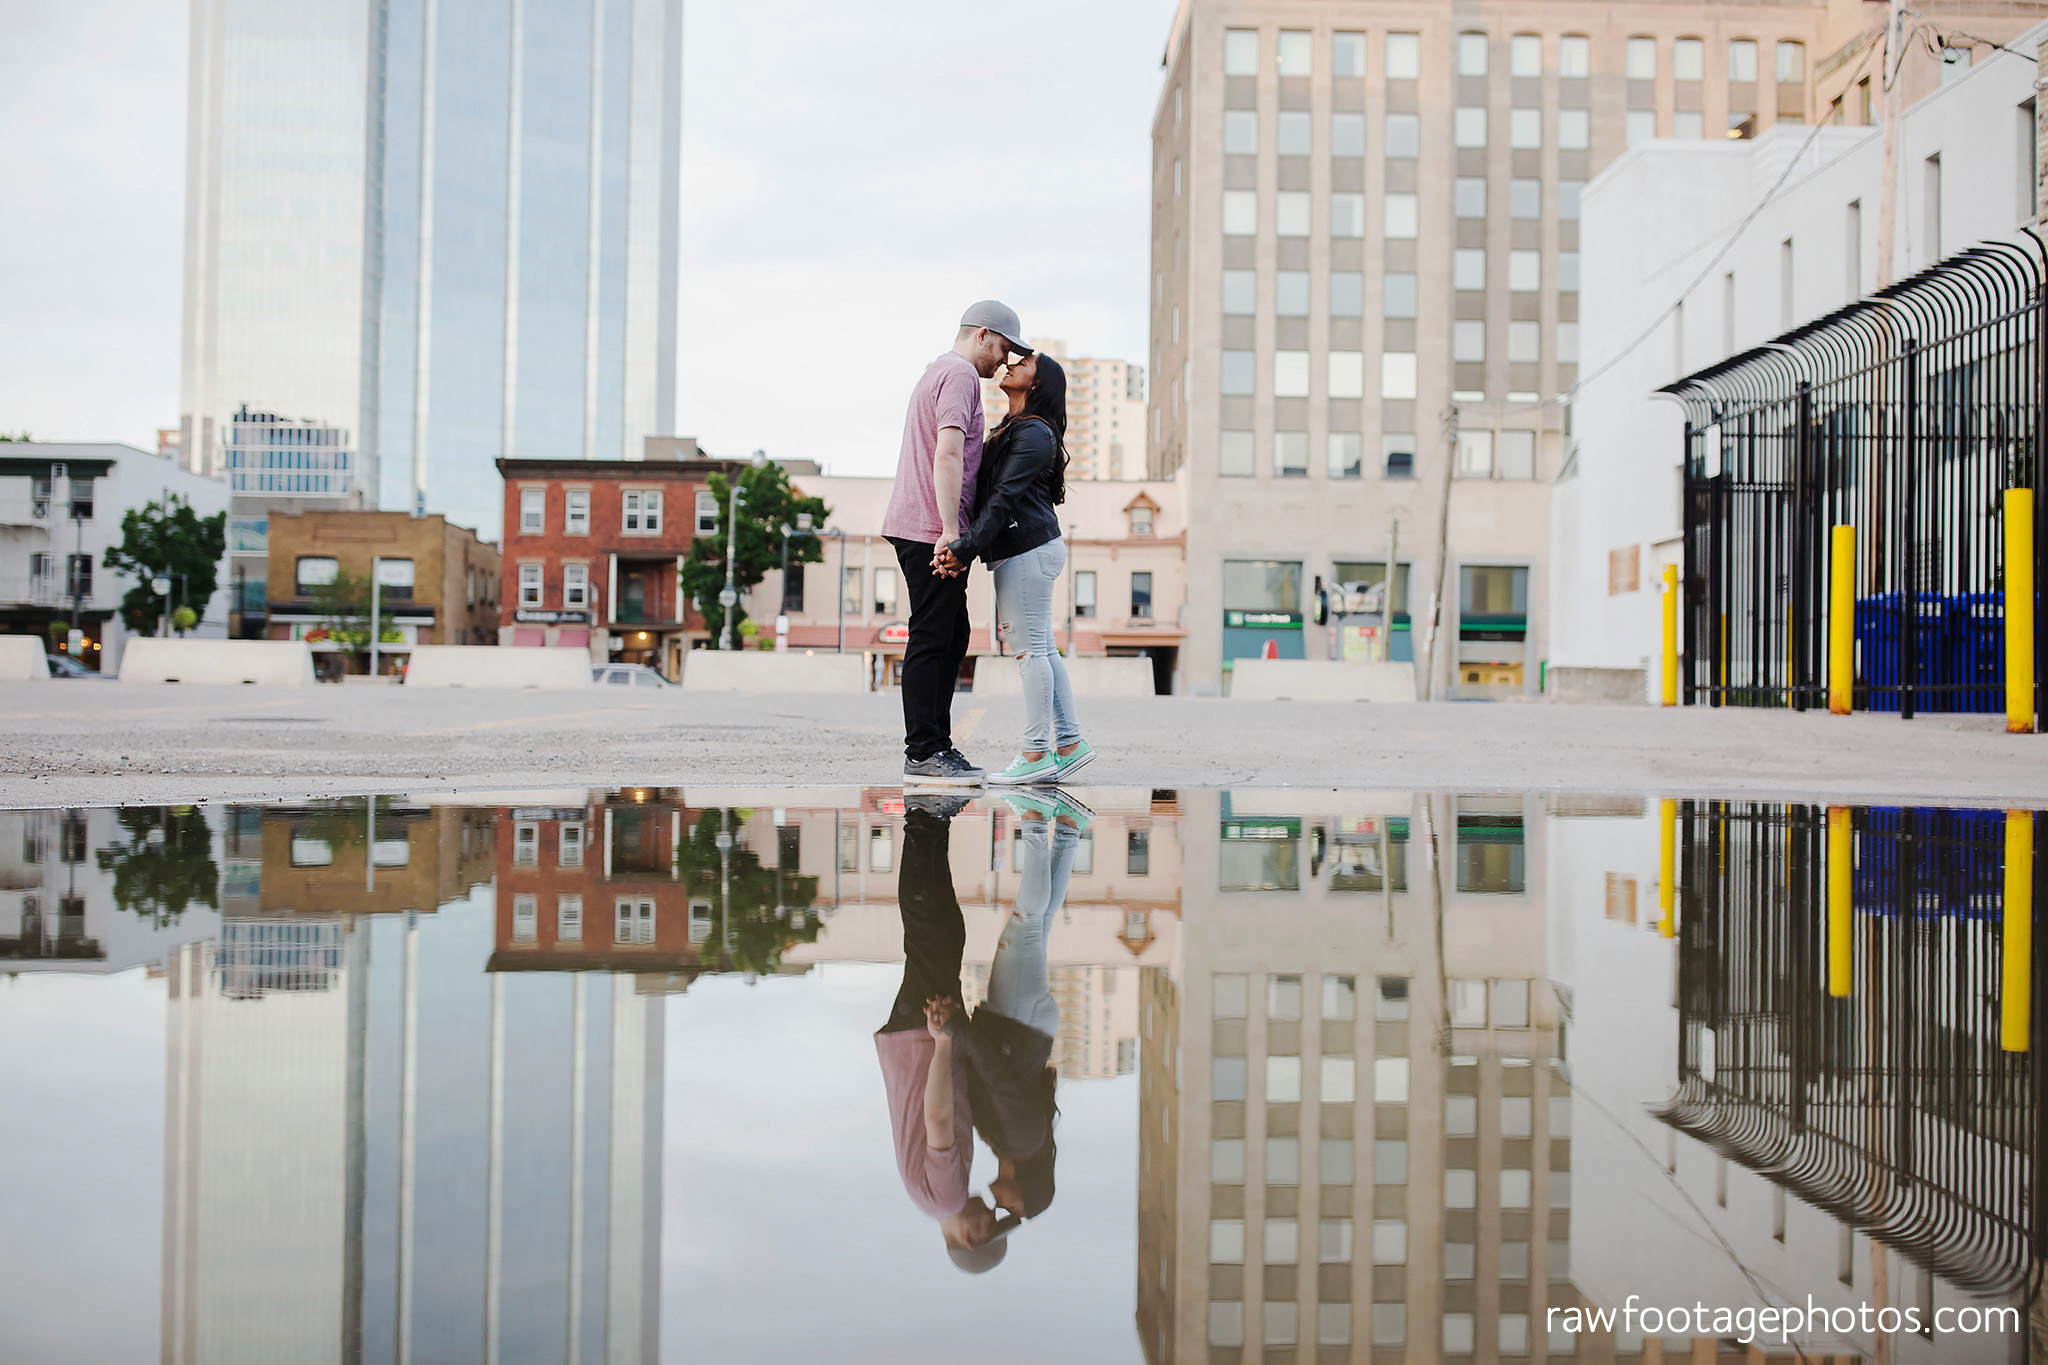 london_ontario_wedding_photographer-engagement_session-best_of_2018-raw_footage_photography025_1.jpg